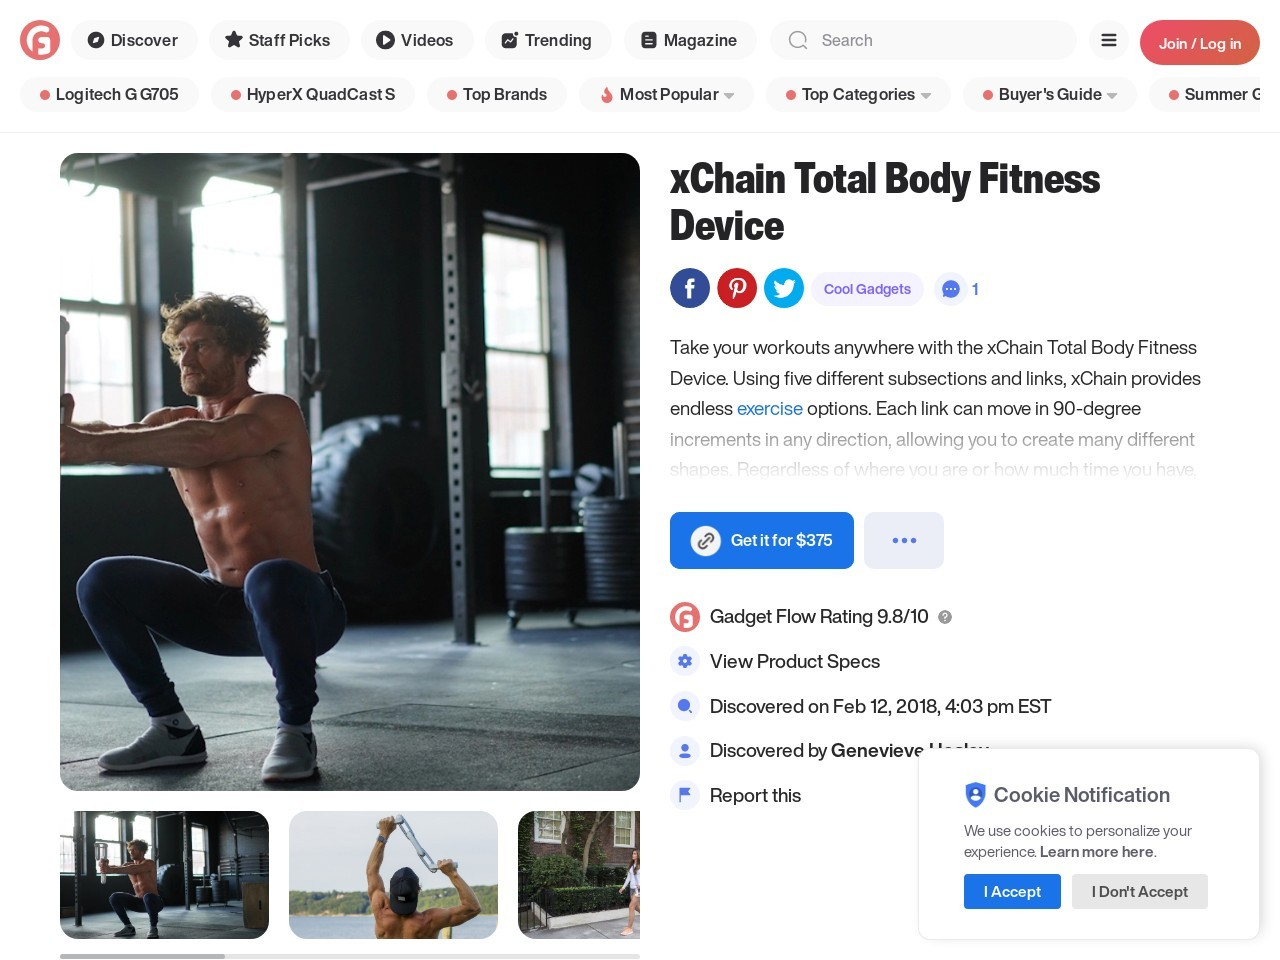 xChain Total Body Fitness Device